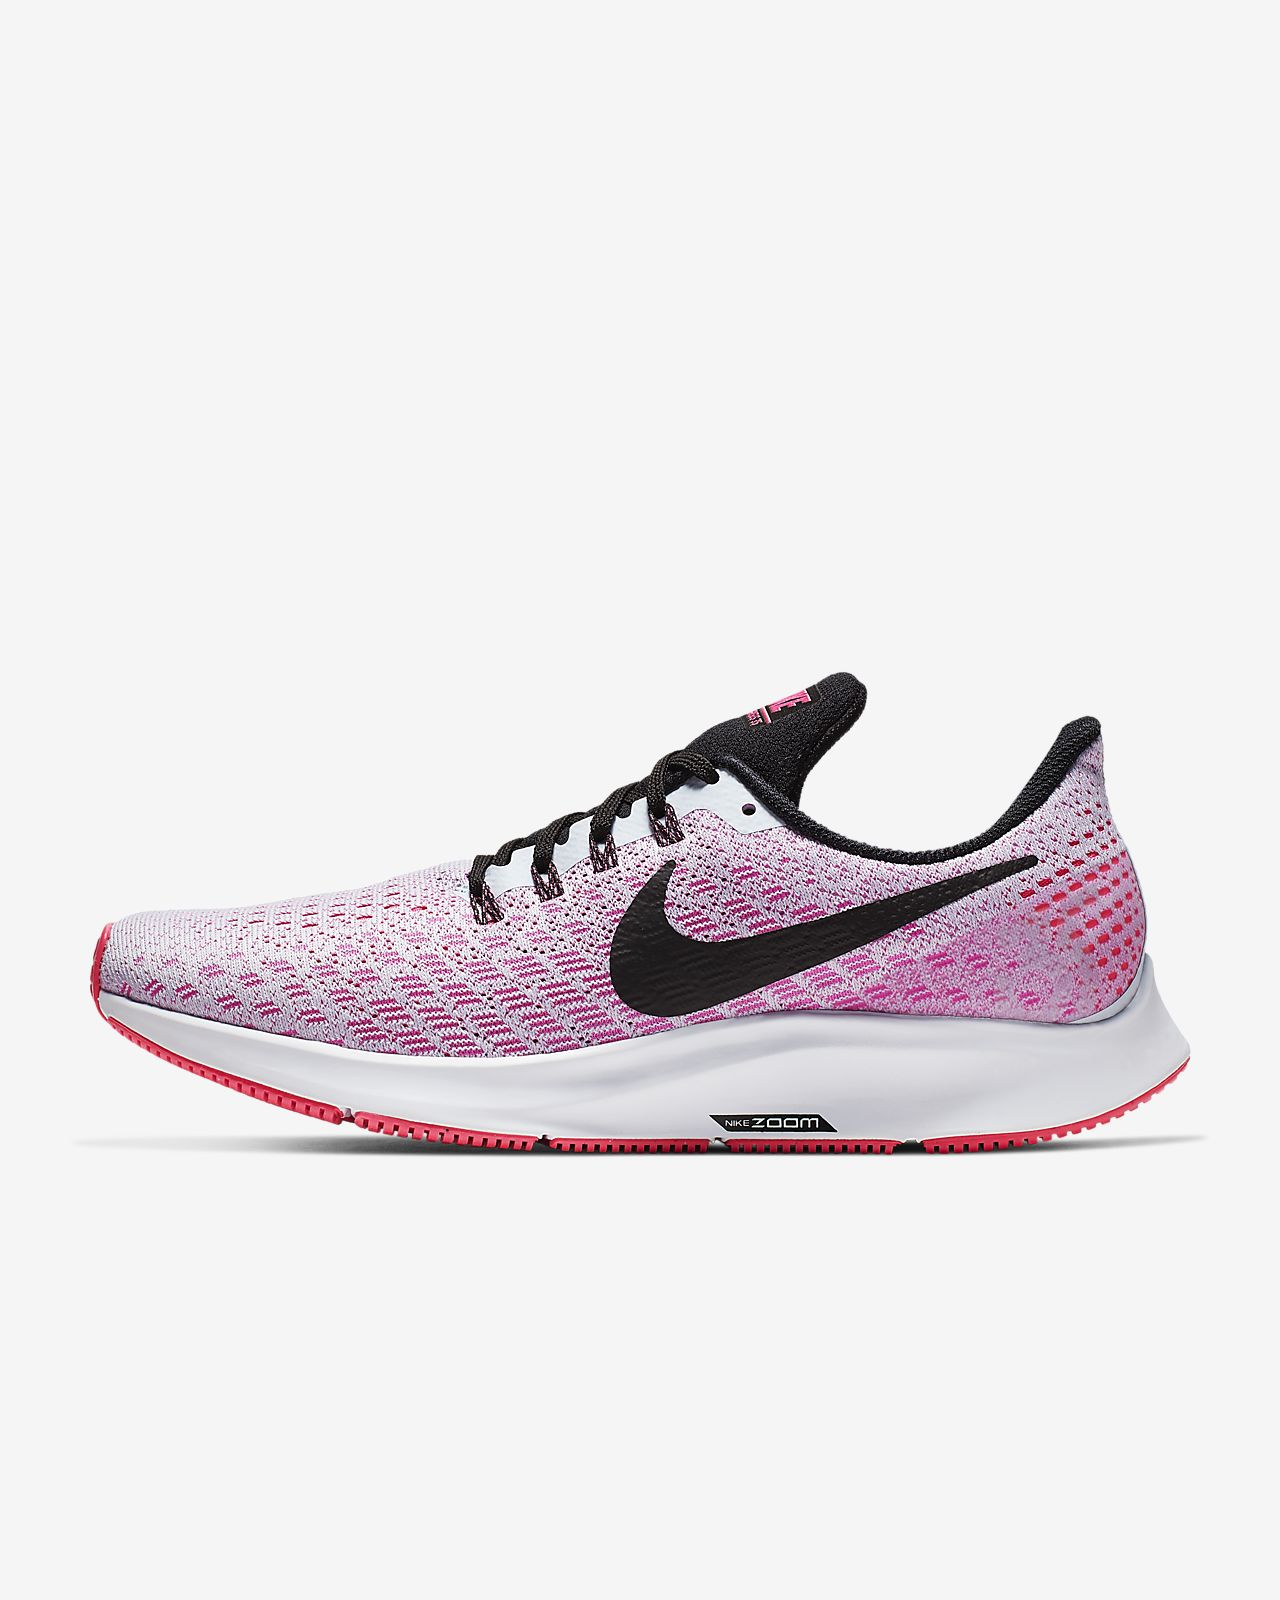 6d52720777051 Nike Air Zoom Pegasus 35 Women s Running Shoe. Nike.com ZA